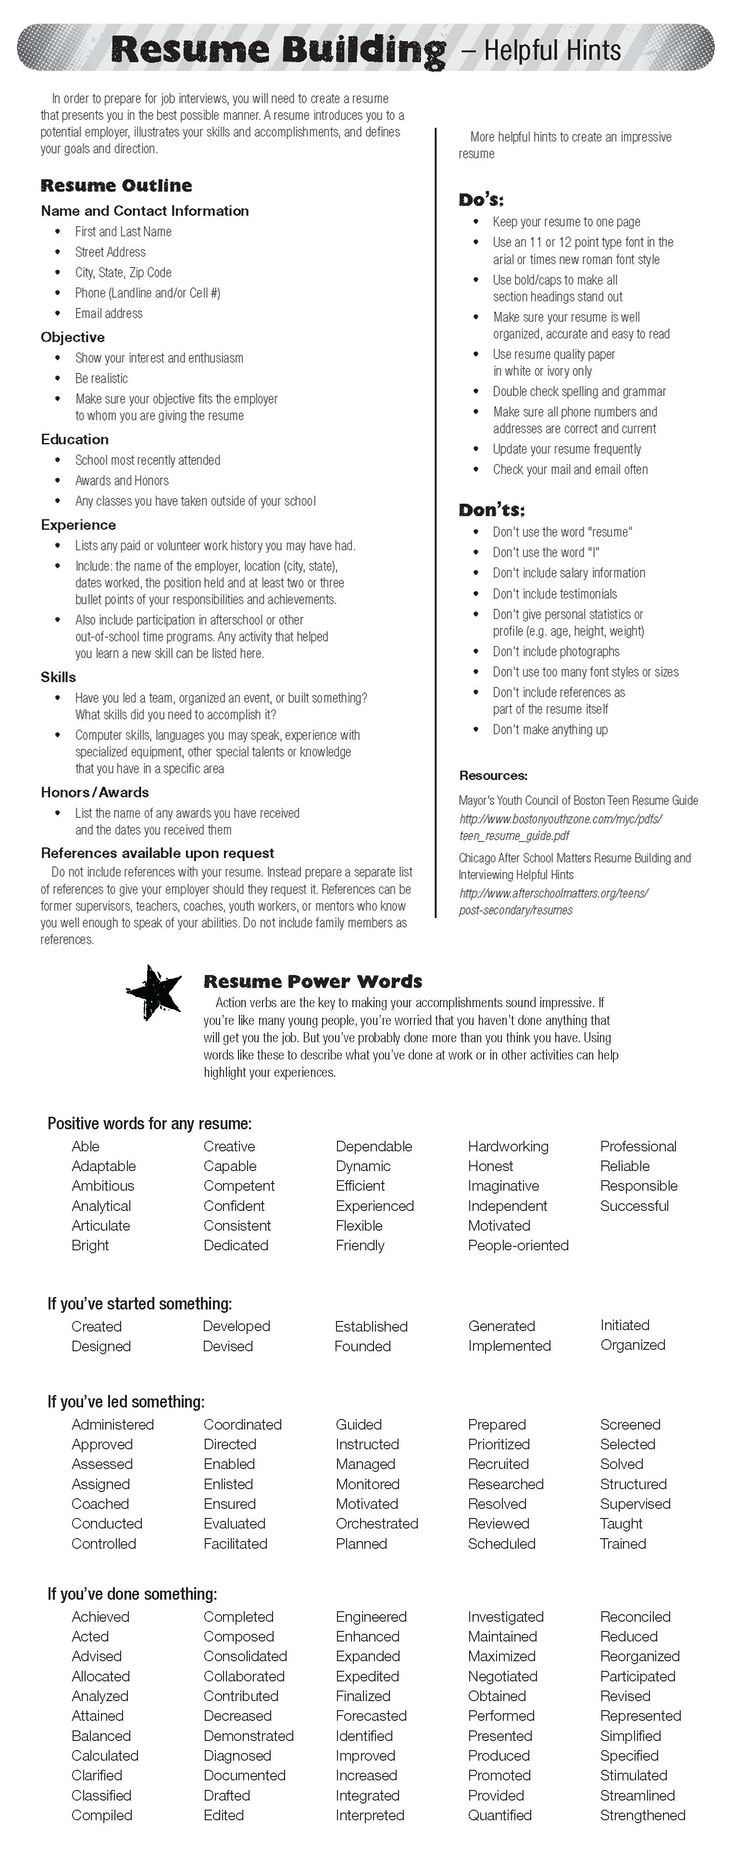 Opposenewapstandardsus  Unusual  Ideas About Resume On Pinterest  Cv Format Resume Cv And  With Interesting  Ideas About Resume On Pinterest  Cv Format Resume Cv And Resume Templates With Delectable Paralegal Job Description Resume Also Resume Rabbit Cost In Addition Resume Examples For College Students With Work Experience And Pmo Resume As Well As Accounting Manager Resume Examples Additionally Send Resume To Jobs From Pinterestcom With Opposenewapstandardsus  Interesting  Ideas About Resume On Pinterest  Cv Format Resume Cv And  With Delectable  Ideas About Resume On Pinterest  Cv Format Resume Cv And Resume Templates And Unusual Paralegal Job Description Resume Also Resume Rabbit Cost In Addition Resume Examples For College Students With Work Experience From Pinterestcom